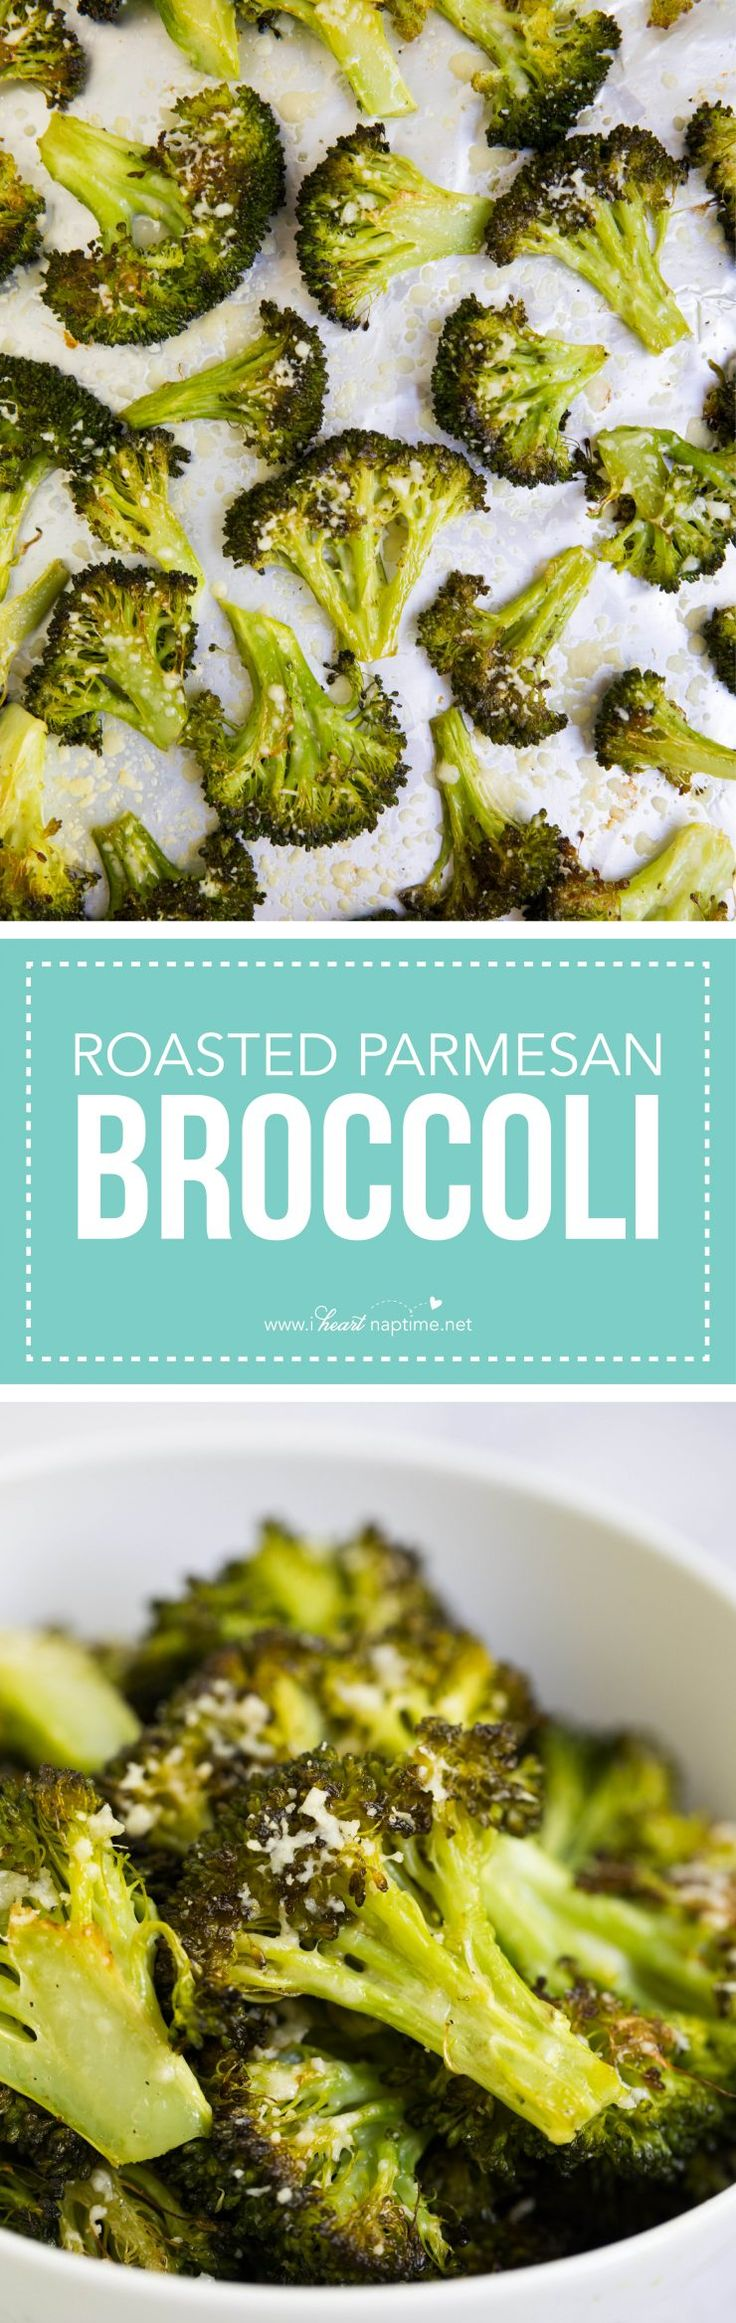 Roasted parmesan broccoli -AKA the best broccoli ever! Such a simple yet tasty side dish!